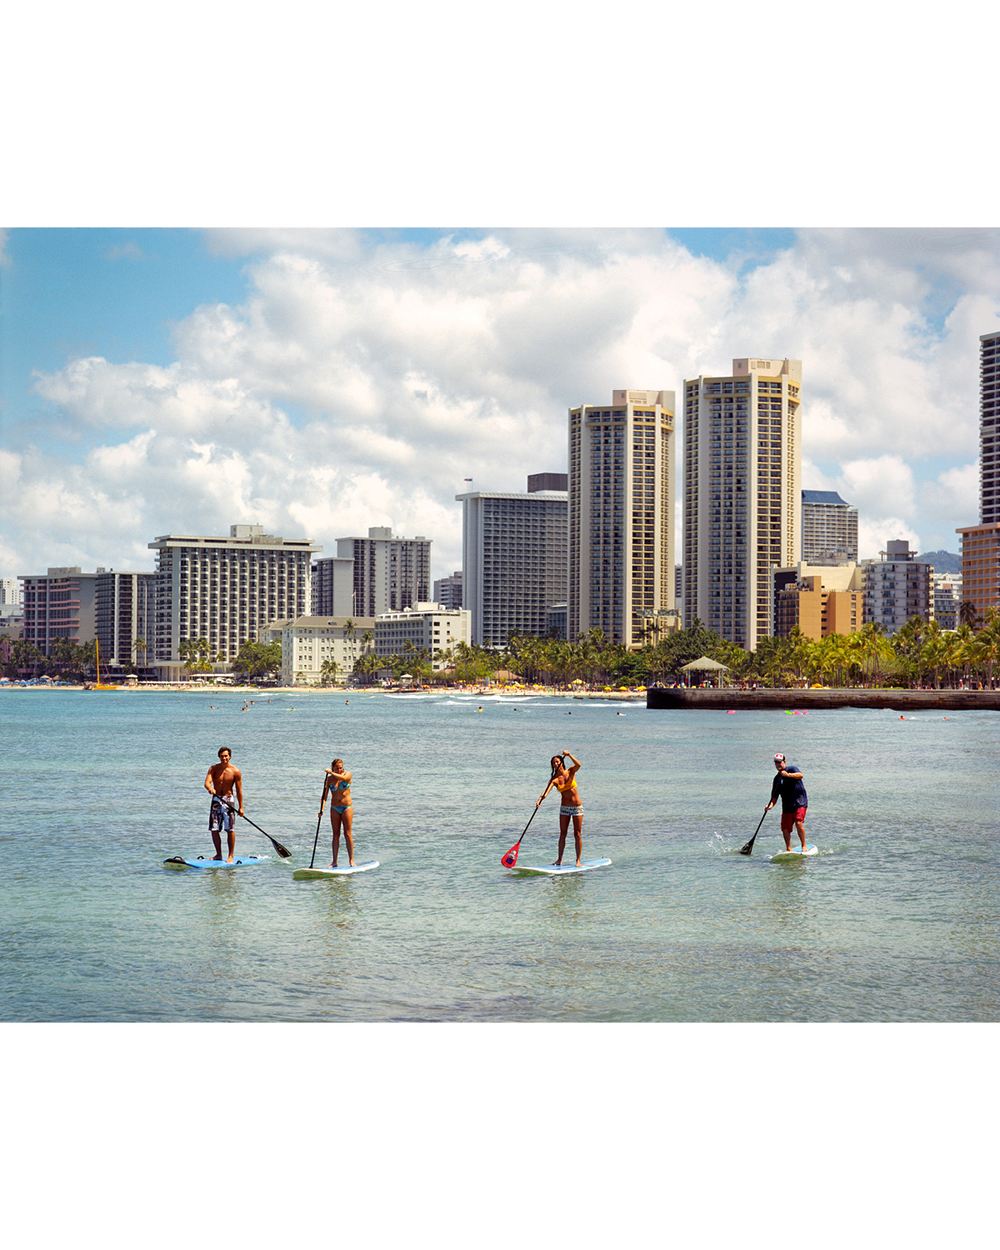 HANS HEDEMANN HIMSELF WITH HIS SURF INSTRUCTING TEAM